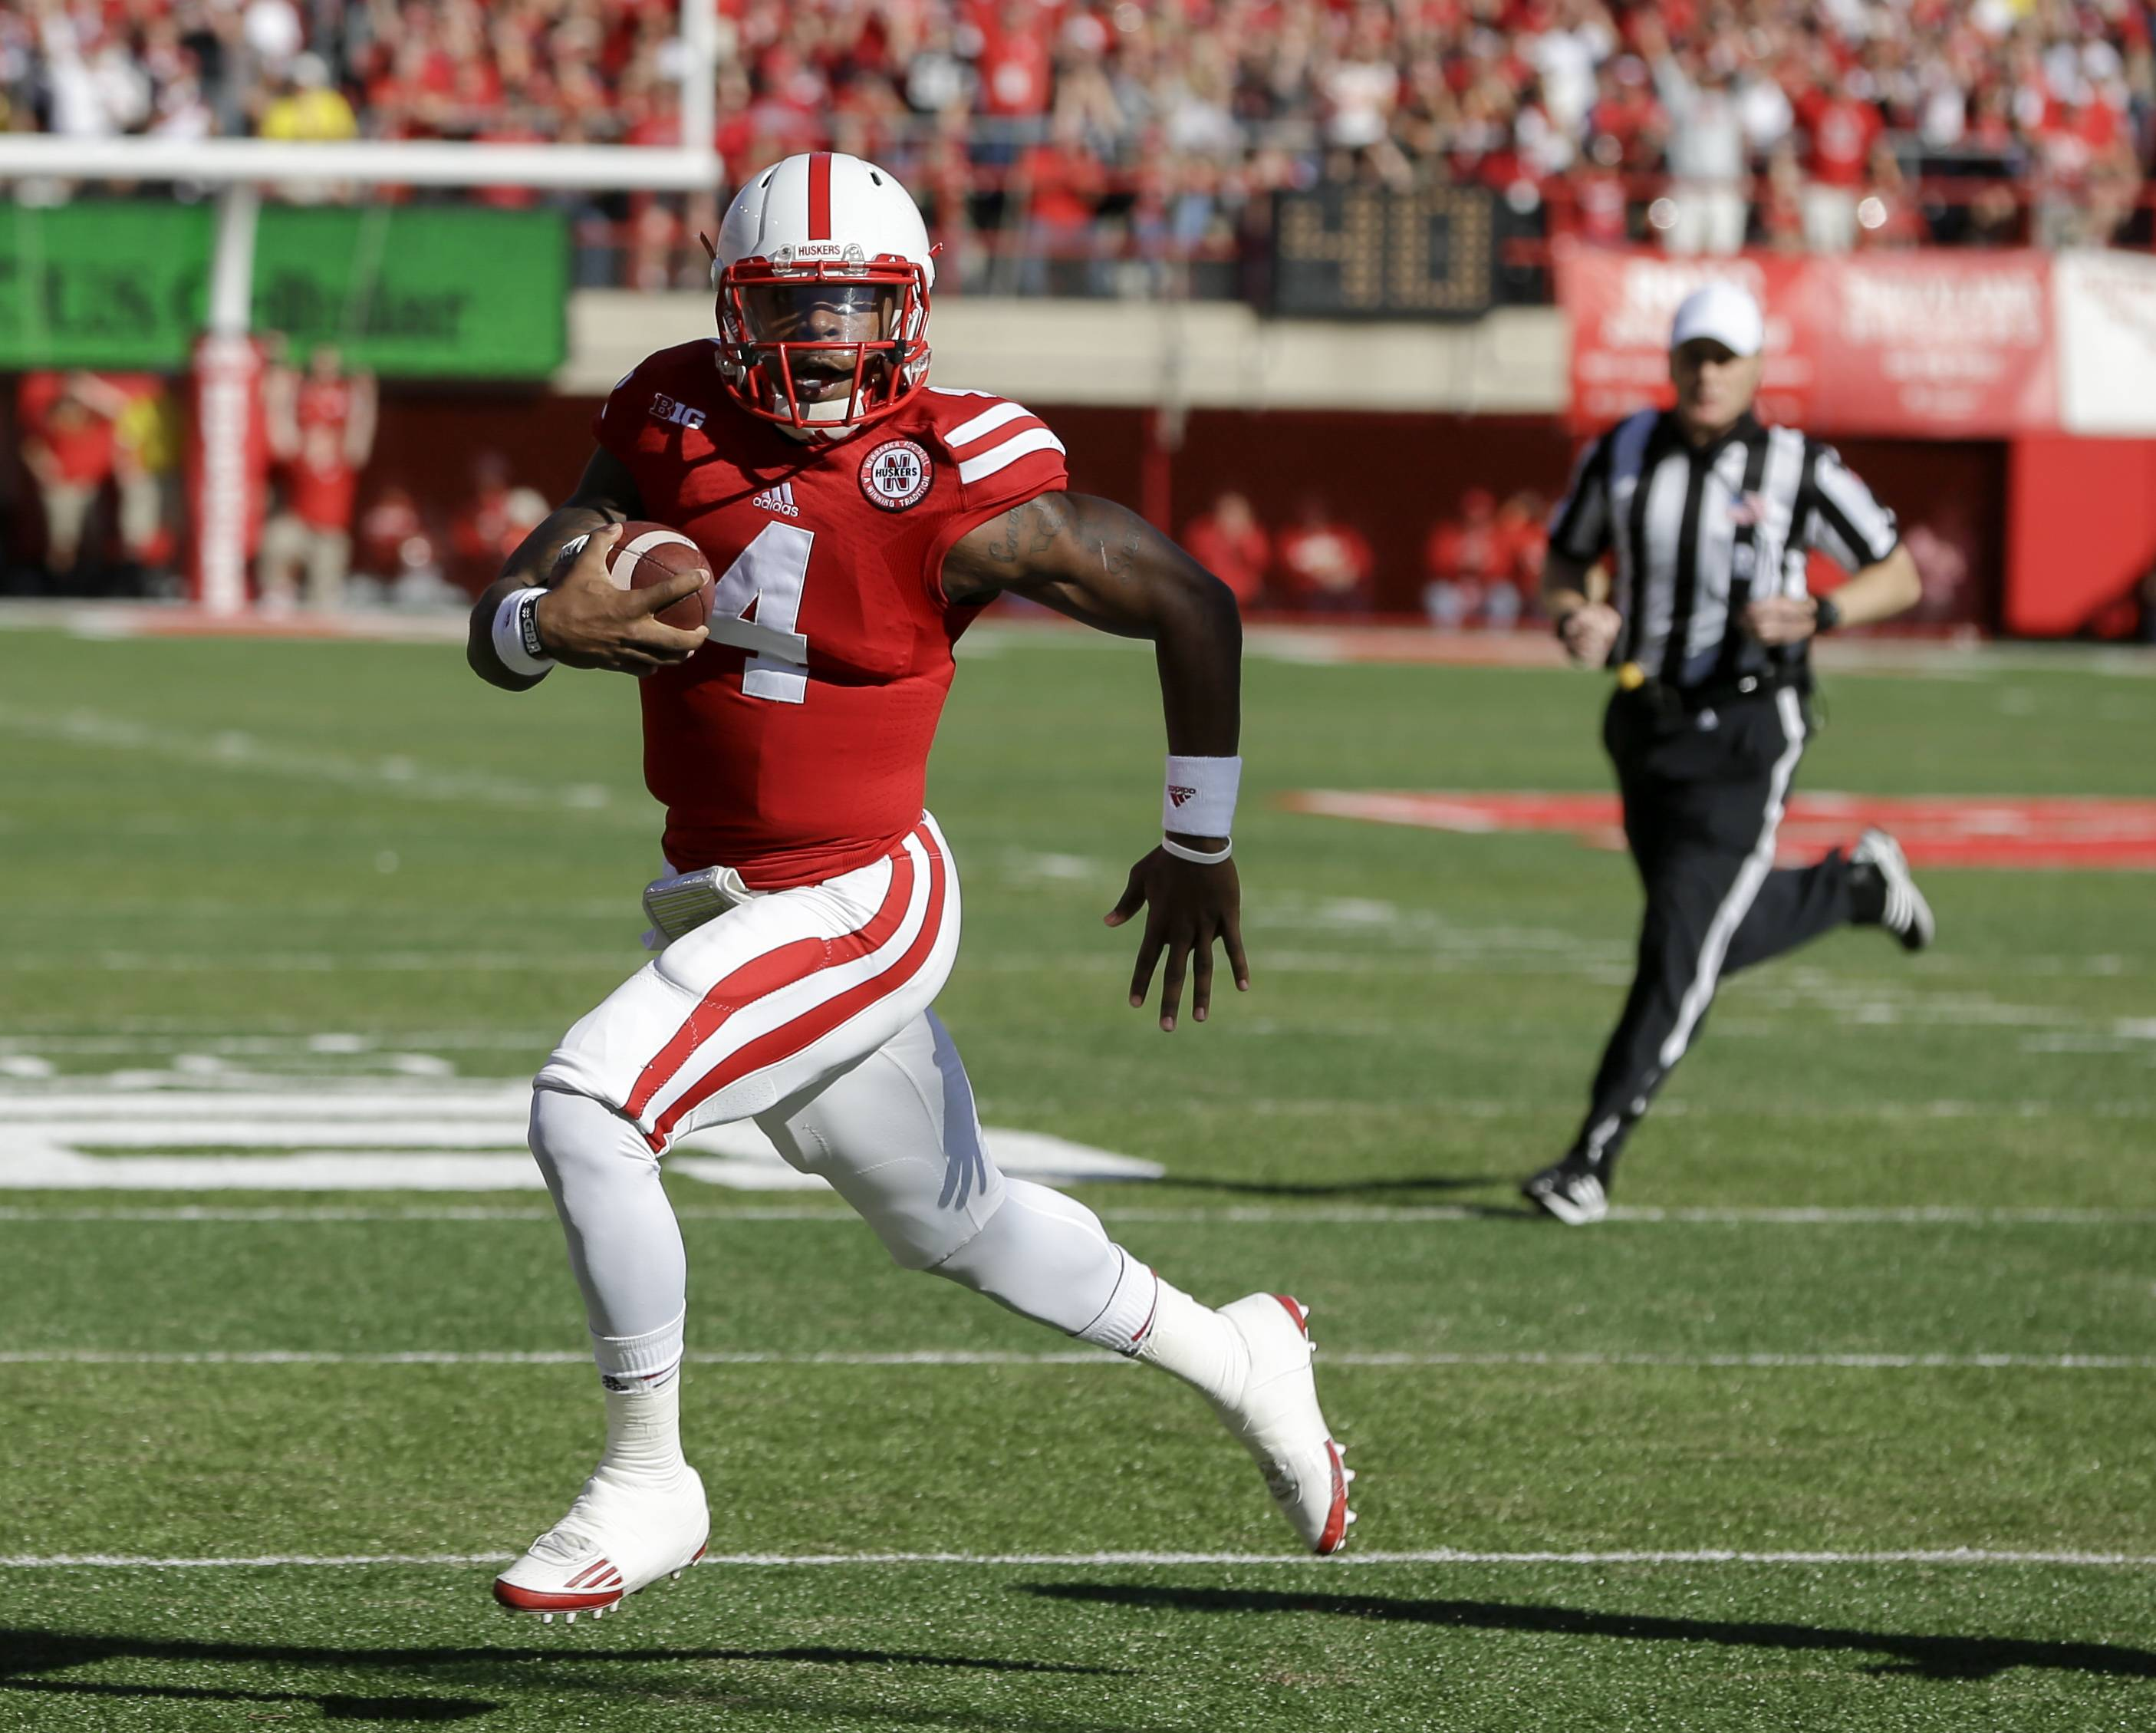 Nebraska quarterback Tommy Armstrong Jr. (4) runs for a touchdown in the first half against Rutgers in Lincoln, Neb., Saturday.